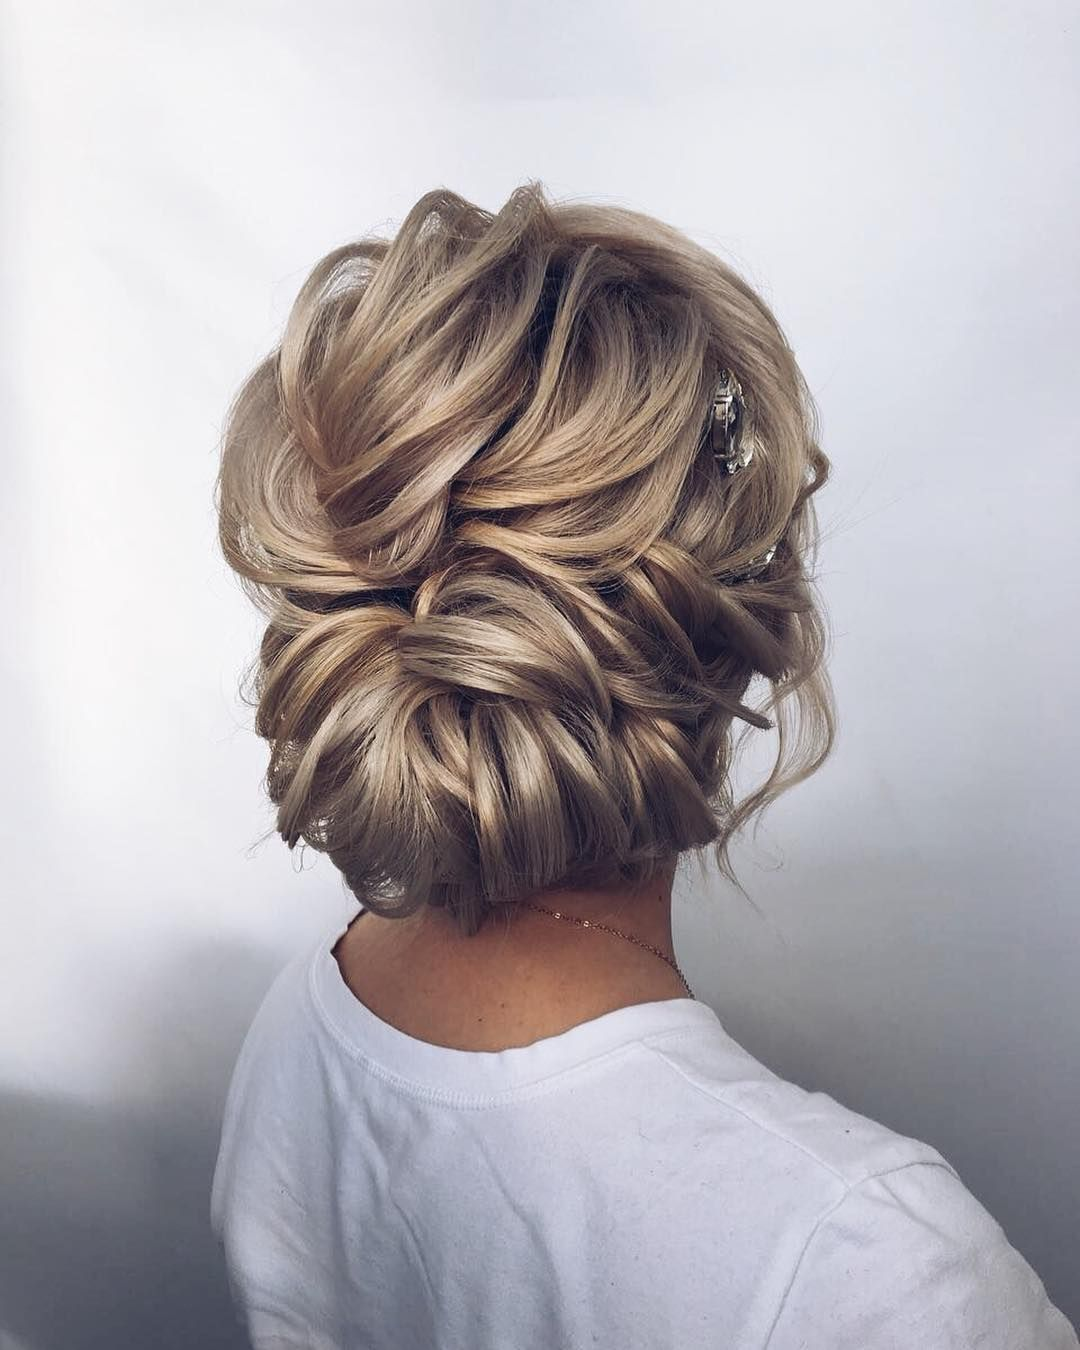 drop-dead gorgeous wedding hairstyles - wedding hairstyle